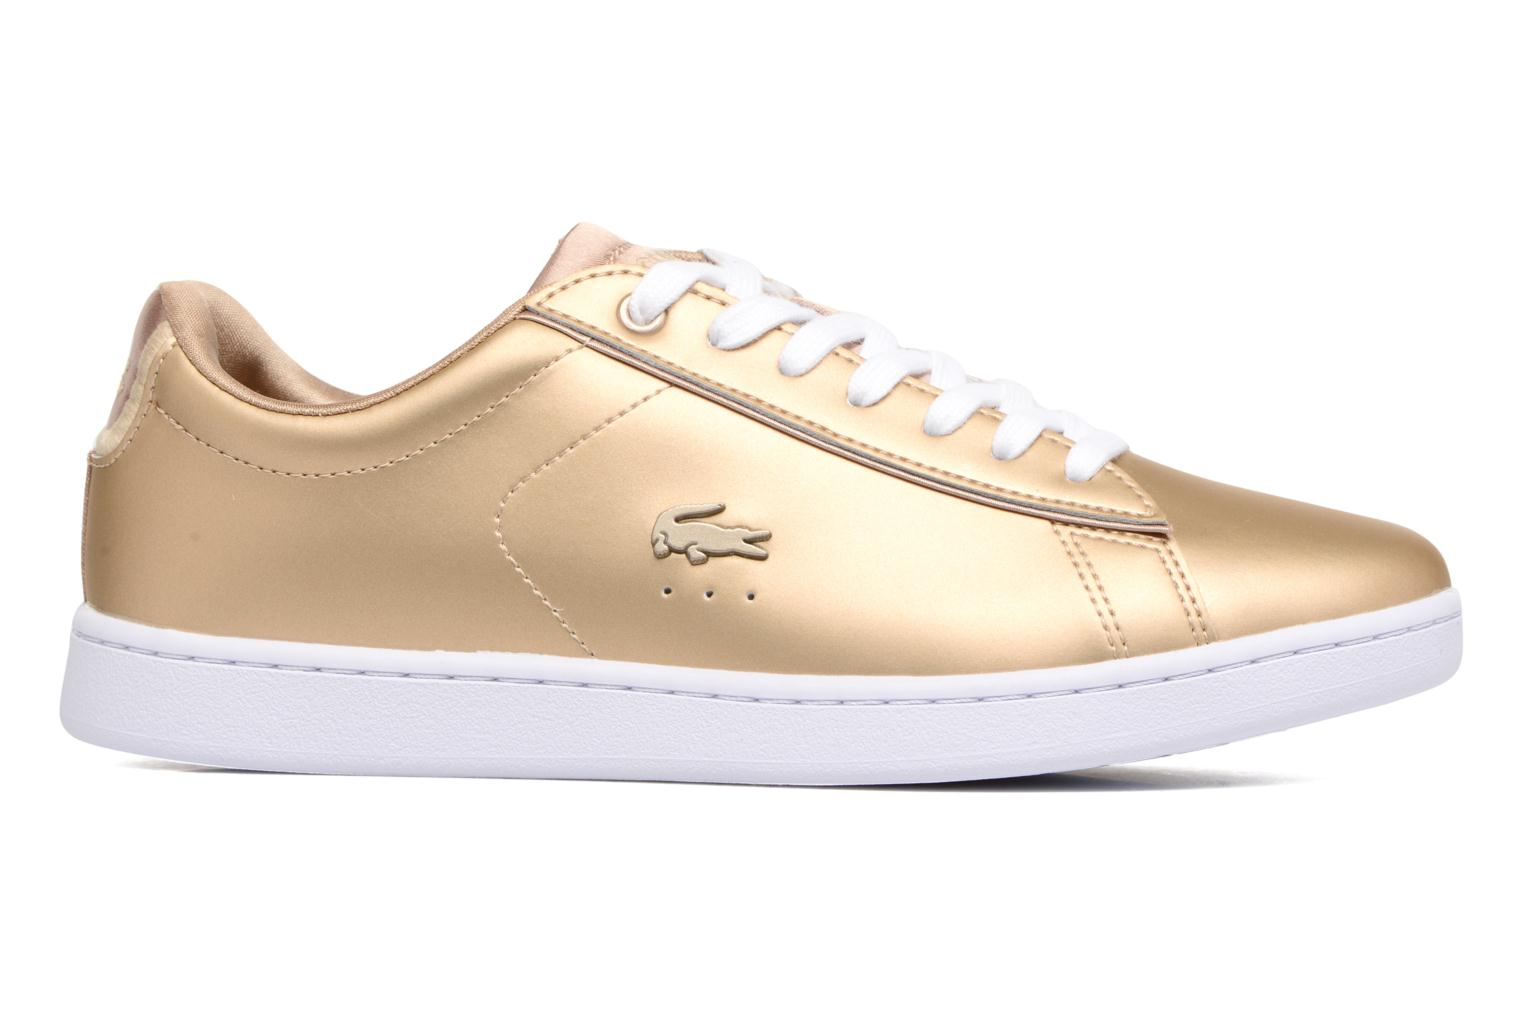 Mujer Lacoste Carnaby Evo 118 1 Deportivas Oro Y Bronce